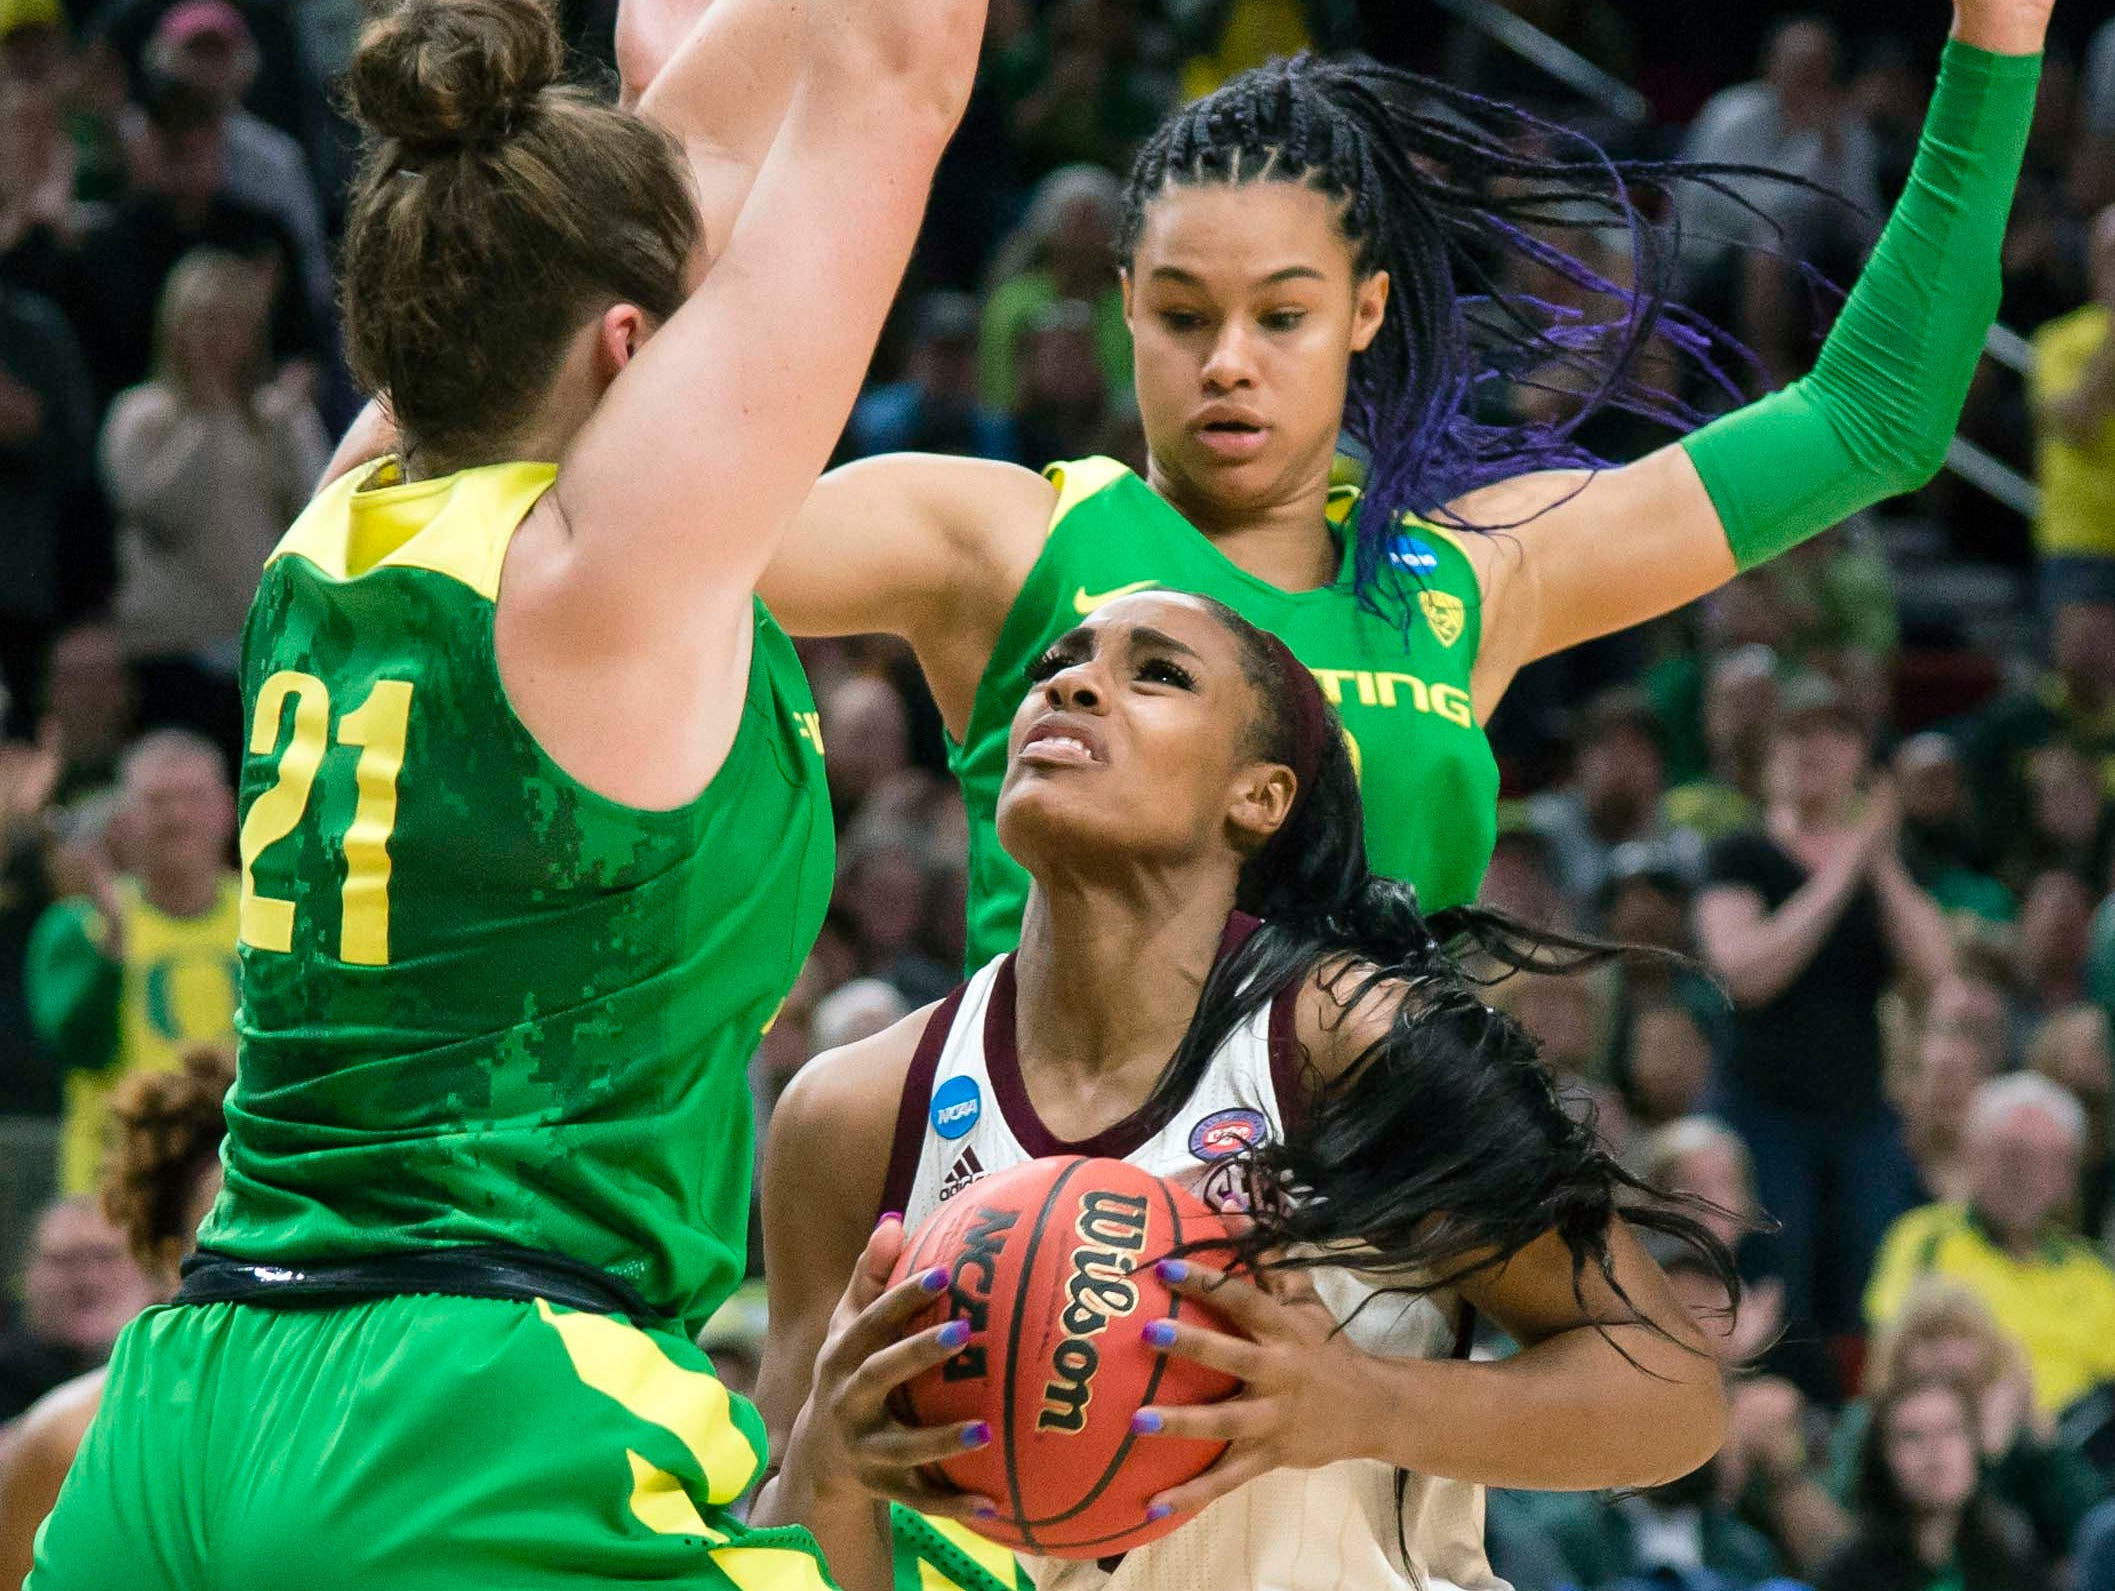 Mississippi State Bulldogs forward Anriel Howard (5) is double teamed by Oregon Ducks forward Erin Boley (21) and forward Satou Sabally (0) during the second half in the championship game of the Portland regional in the women's 2019 NCAA Tournament at Moda Center. The Oregon Ducks beat the Mississippi State Bulldogs 88-84.